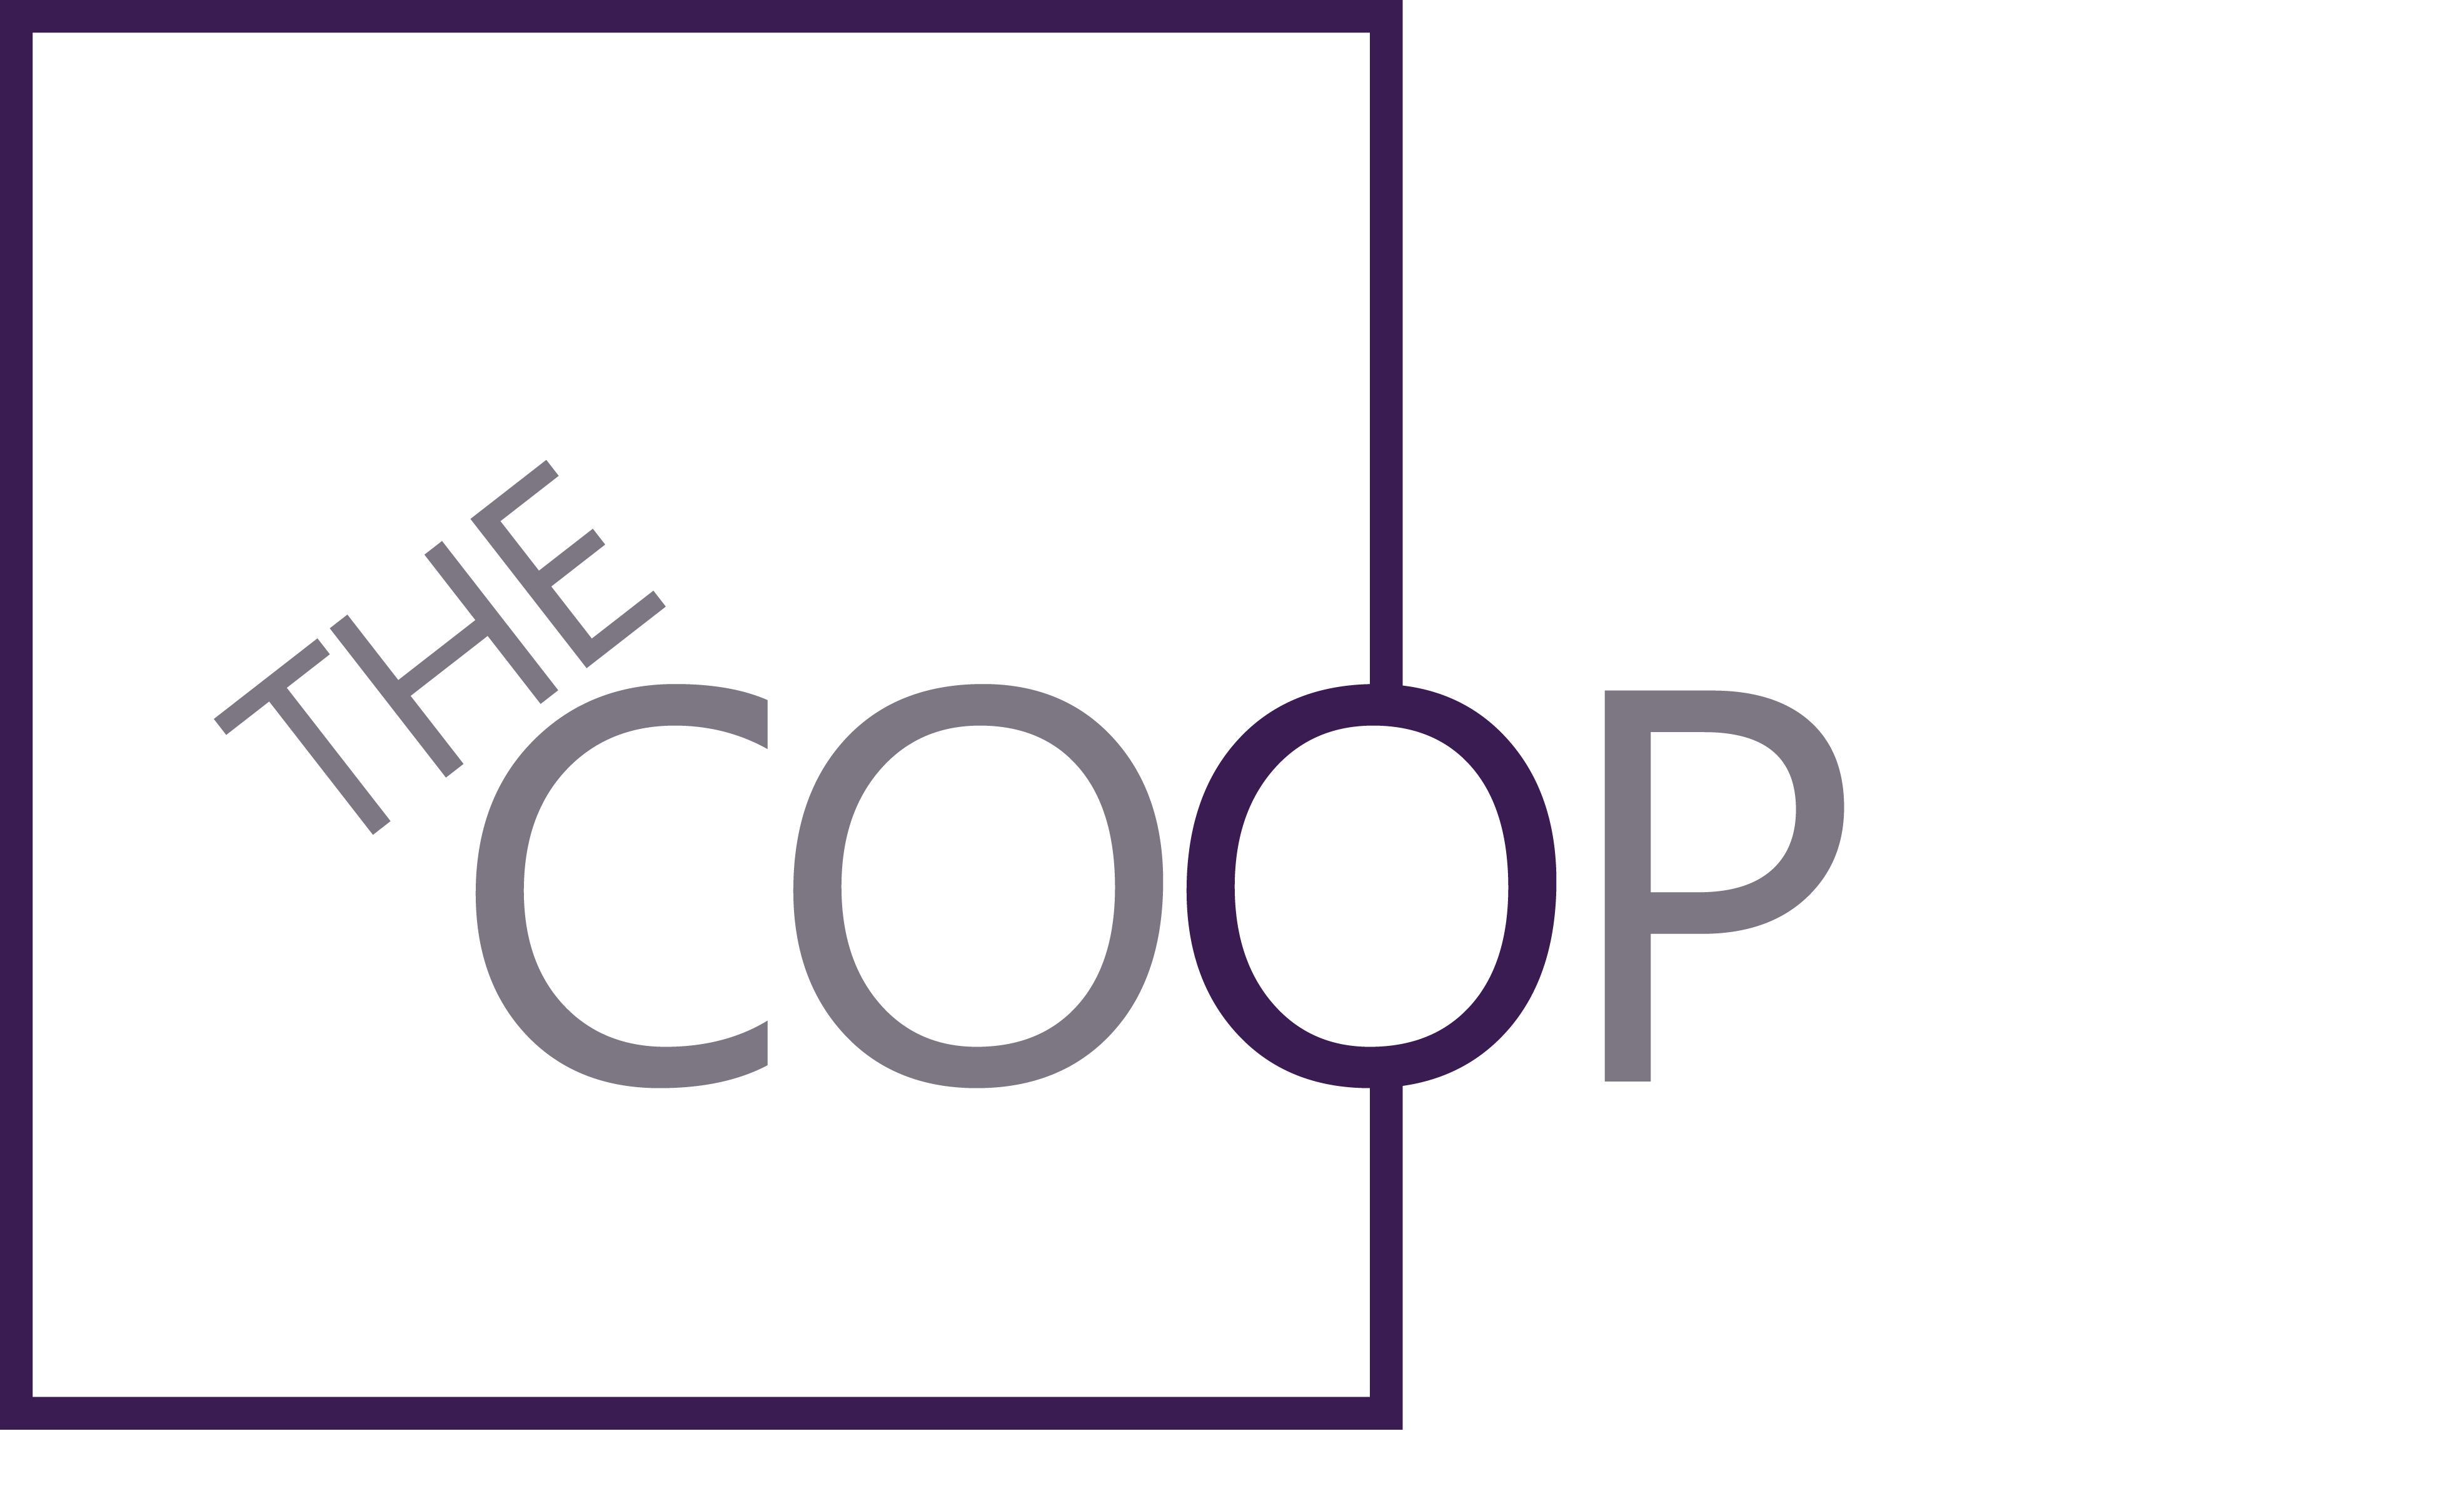 the coop cowork official logo